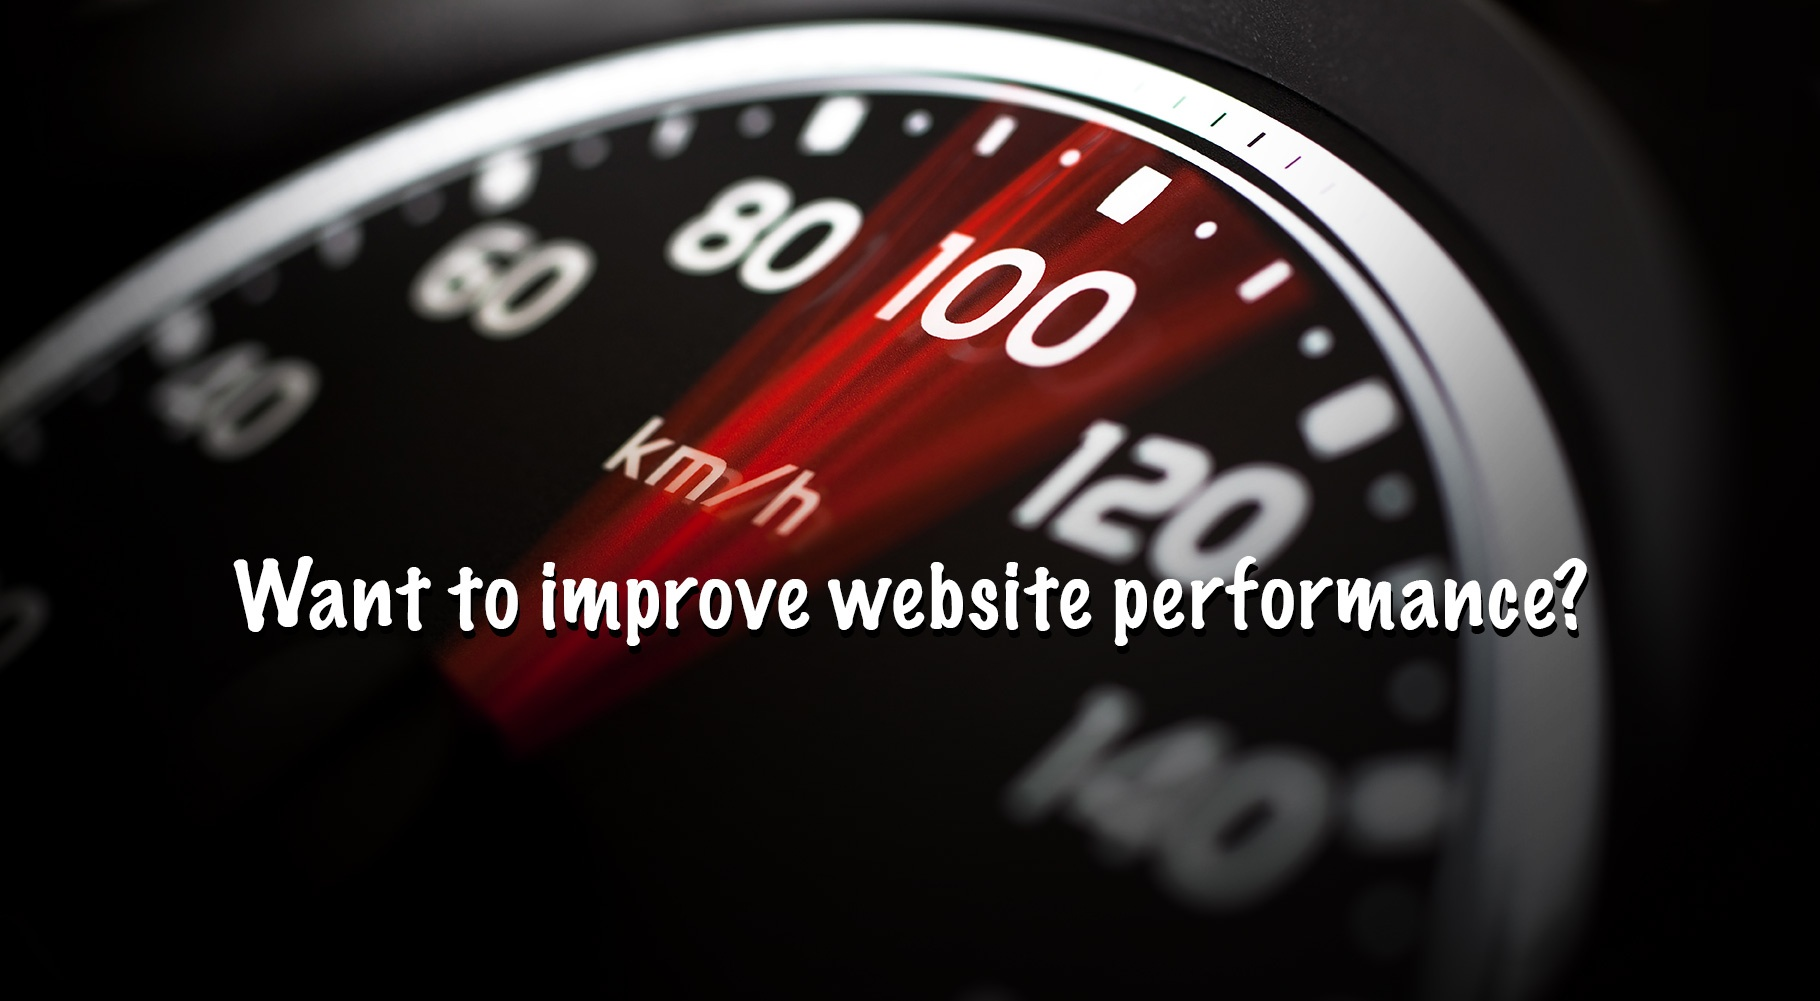 7 reasons responsible for slow performance of the website